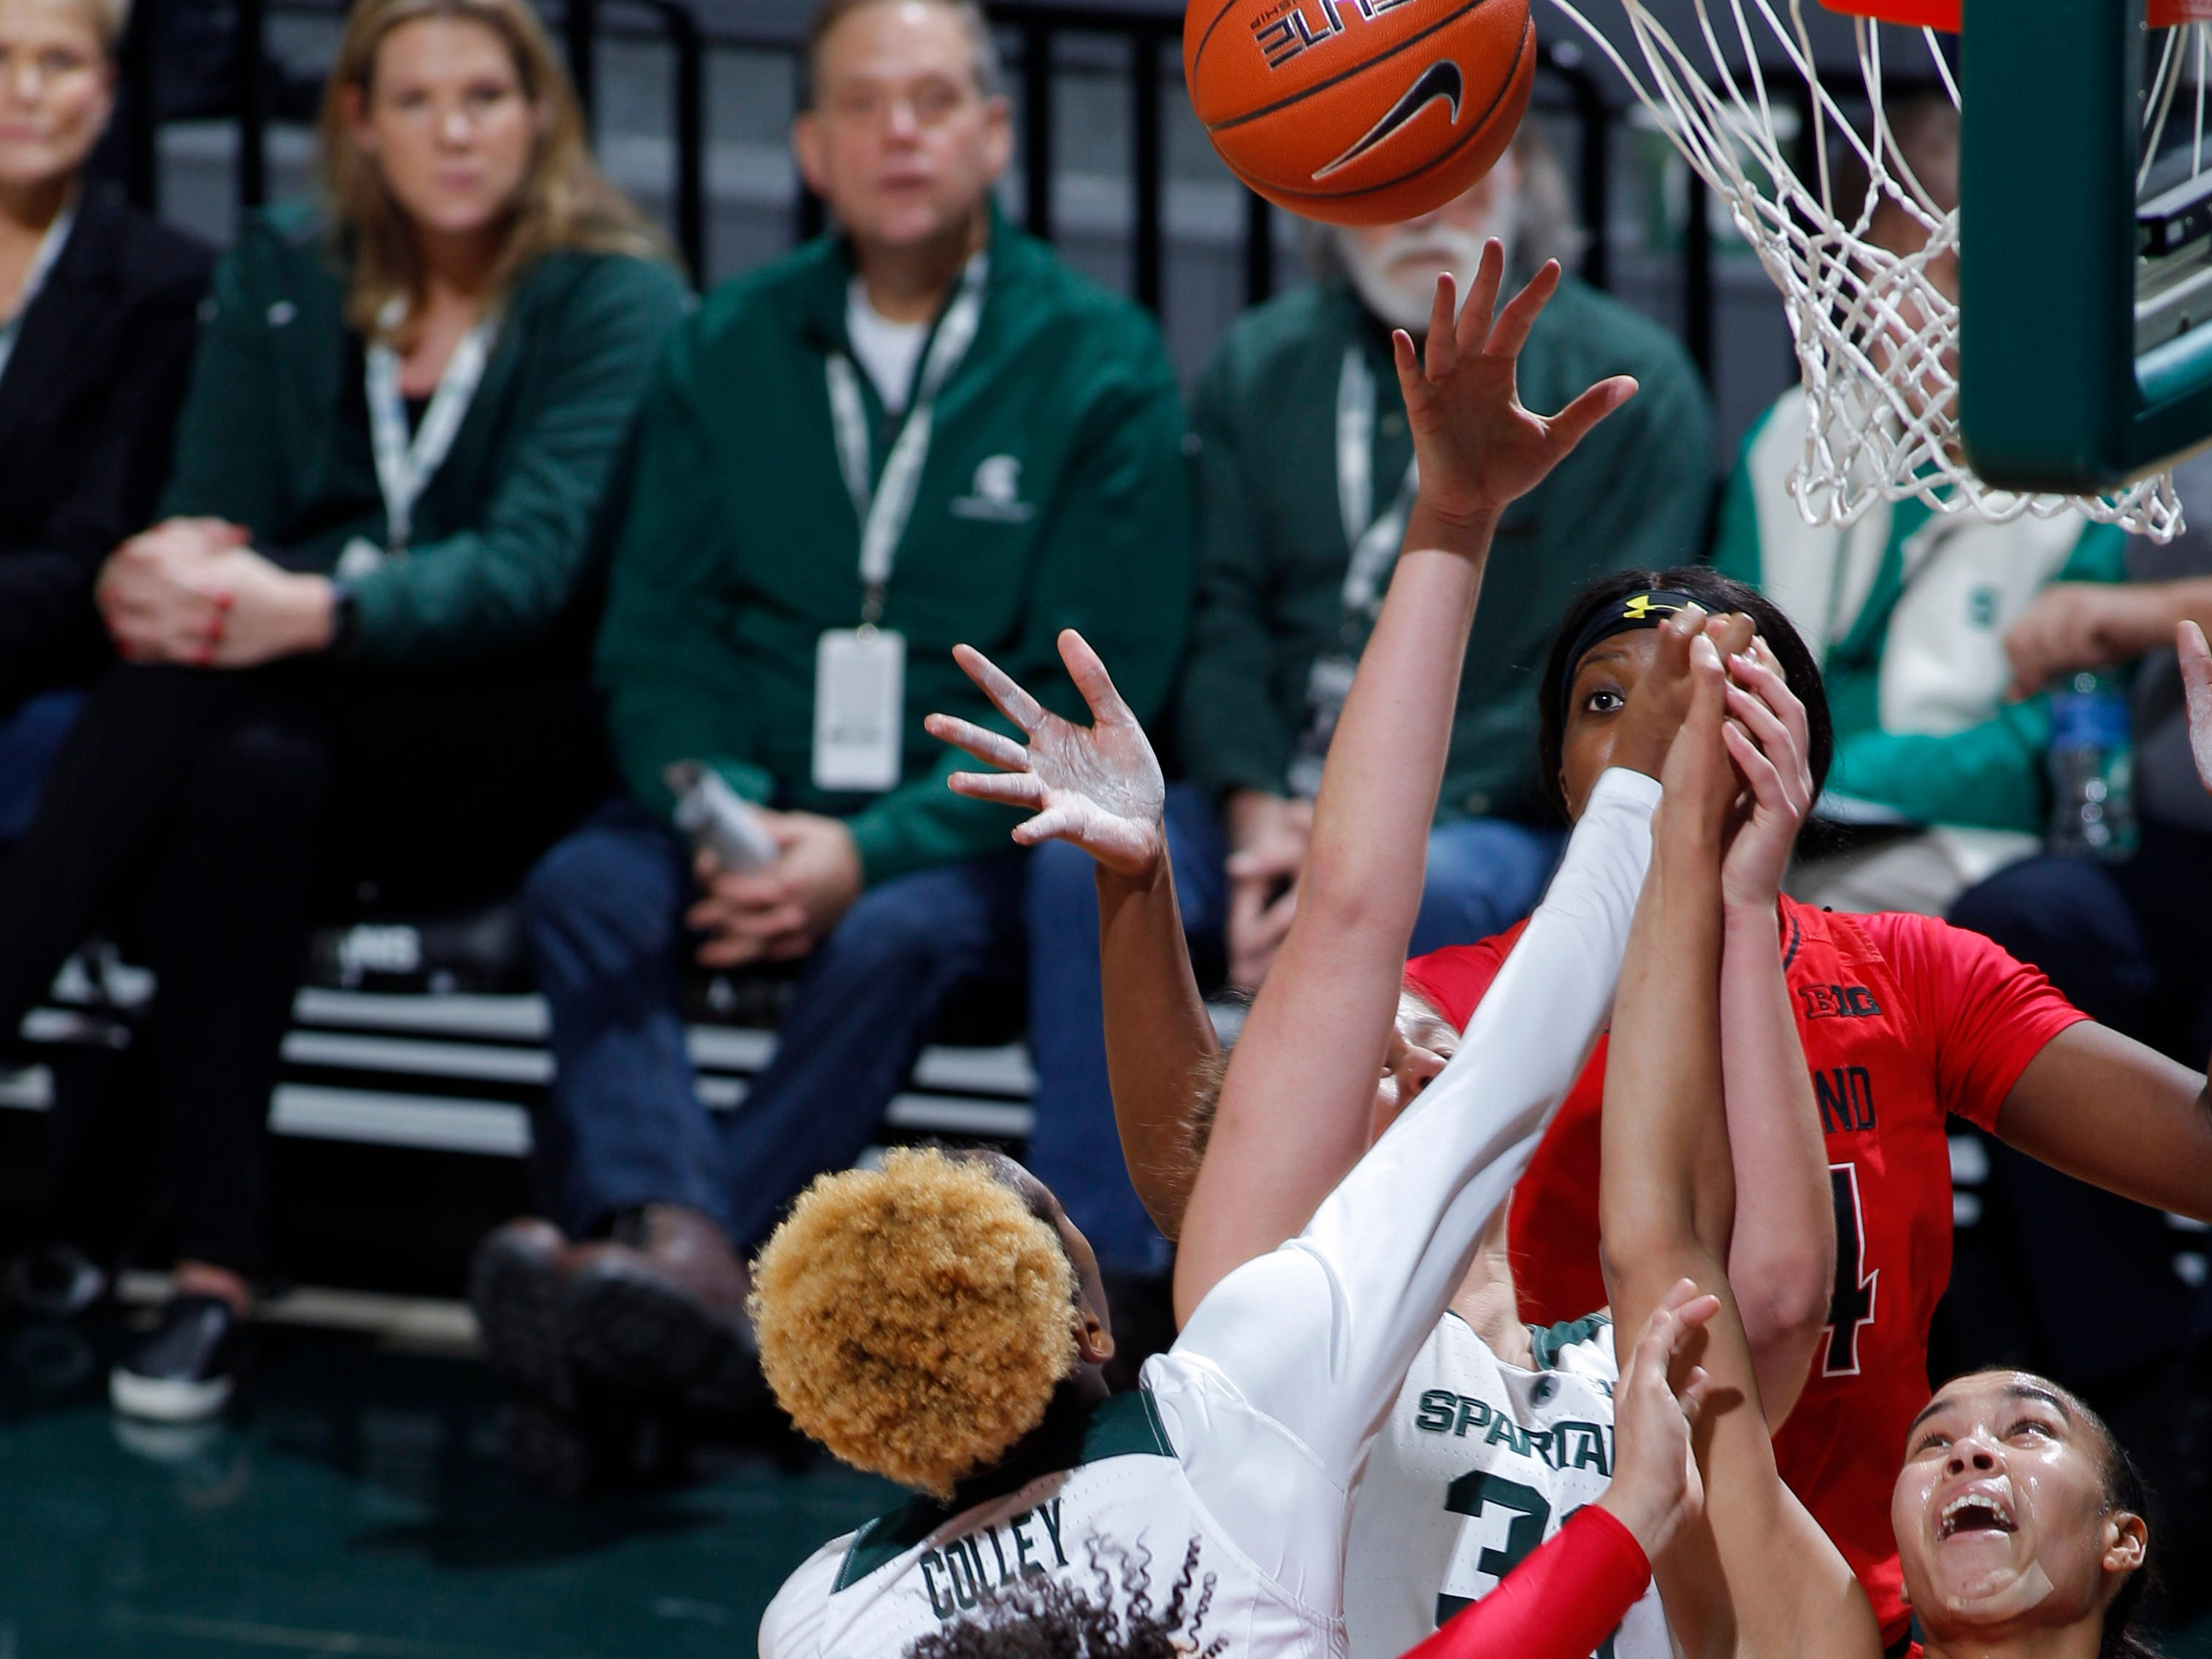 Michigan State's Jenna Allen, center, and Shay Colley, center left, and Maryland's Kaila Charles (5), Blair Watson (22) and Stephanie Jones (24) vie for a rebound, Thursday, Jan. 17, 2019, in East Lansing, Mich.